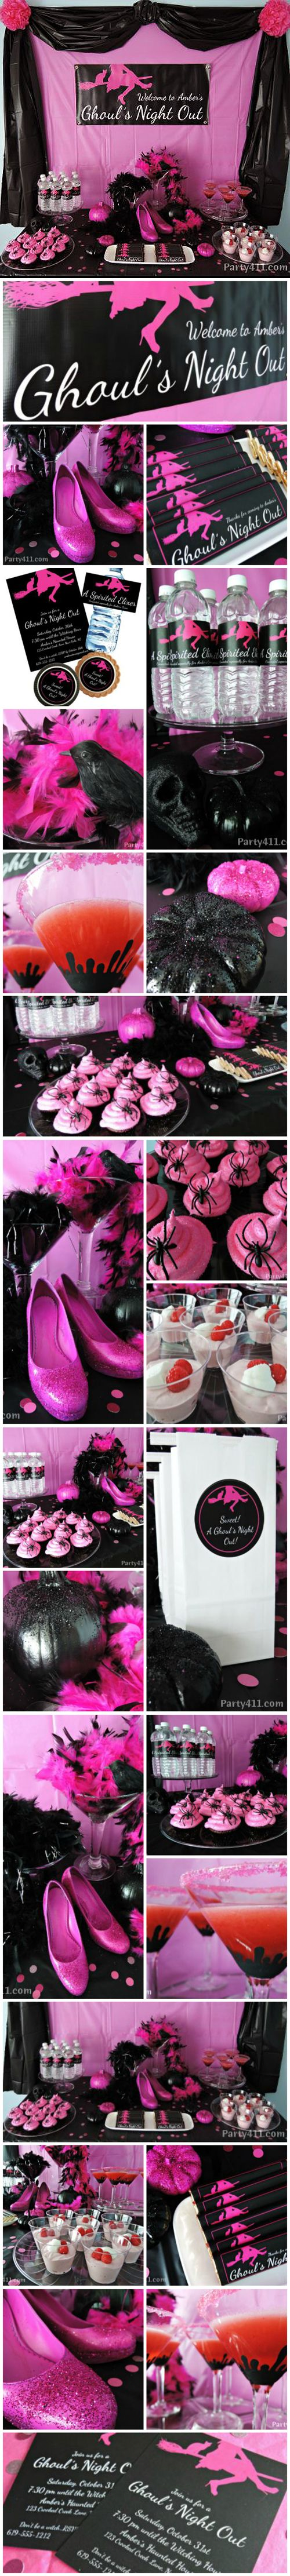 """Ghoul's Night Out"" Pink & Black Halloween Party ideas."